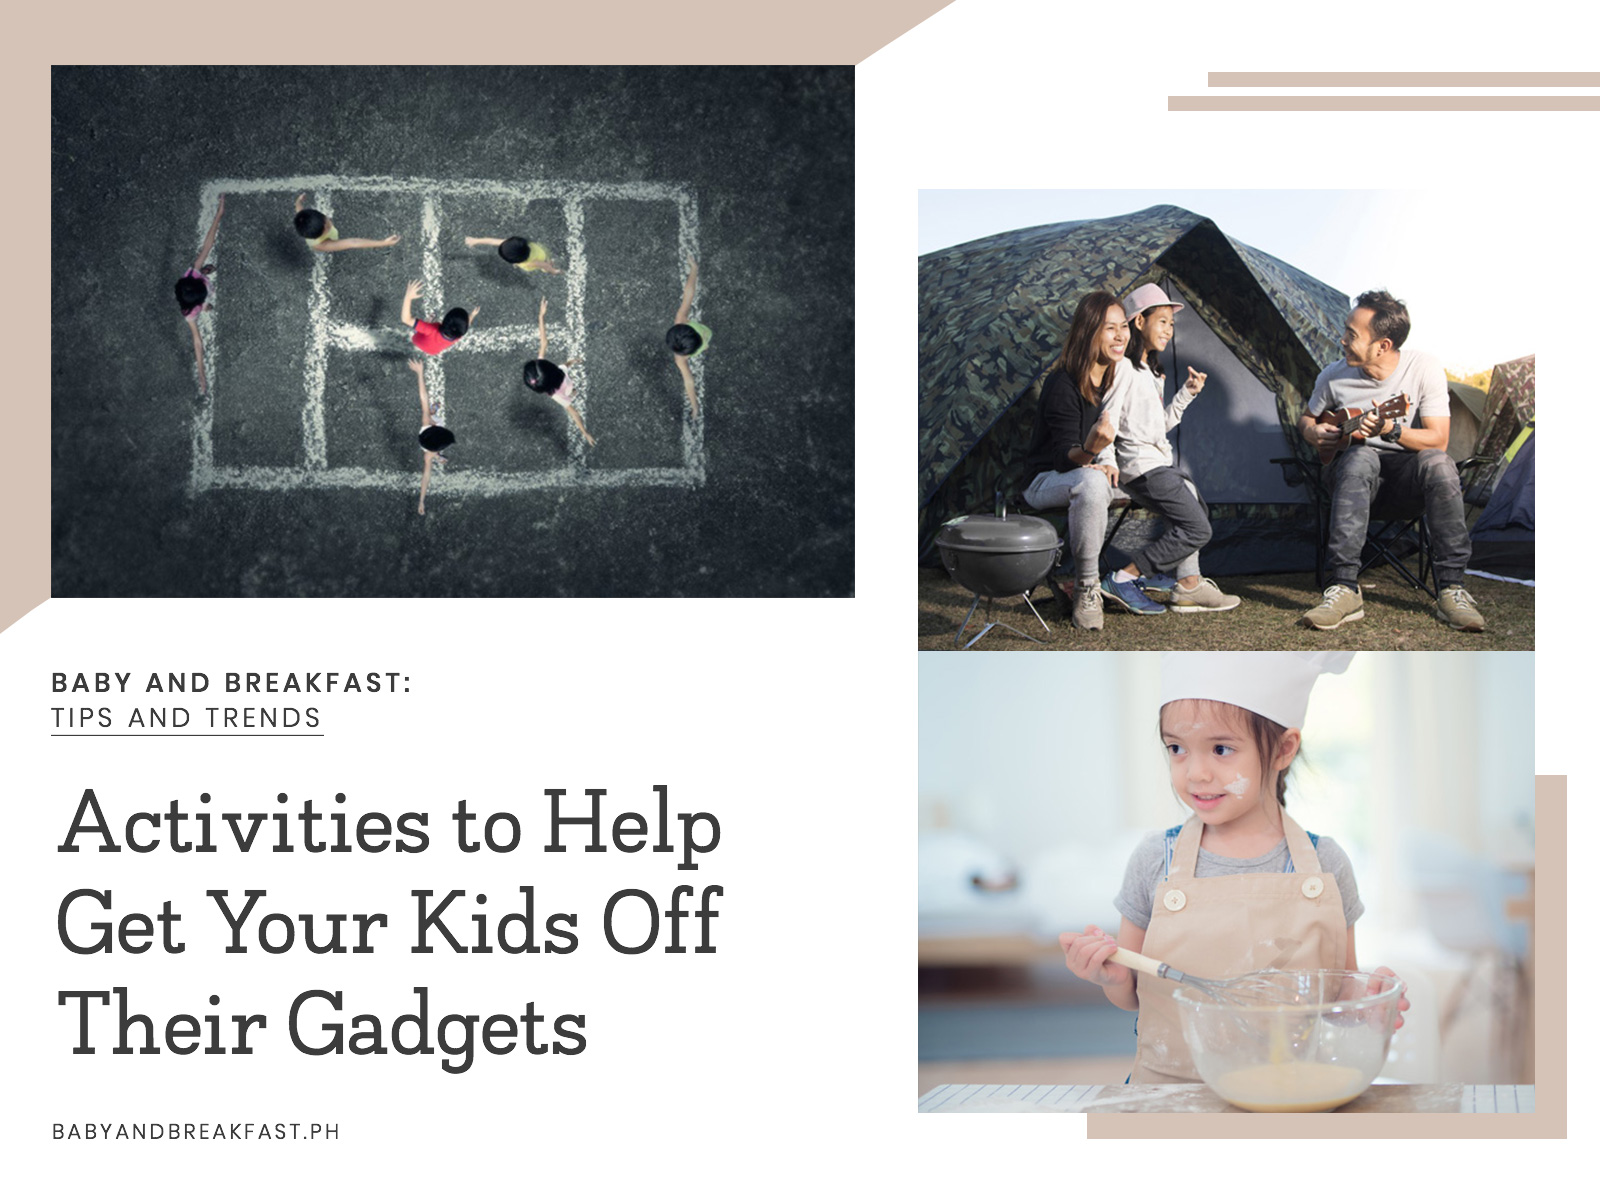 Baby and Breakfast: Tips and Trends Activities to Help Get Your Kids Off Their Gadgets